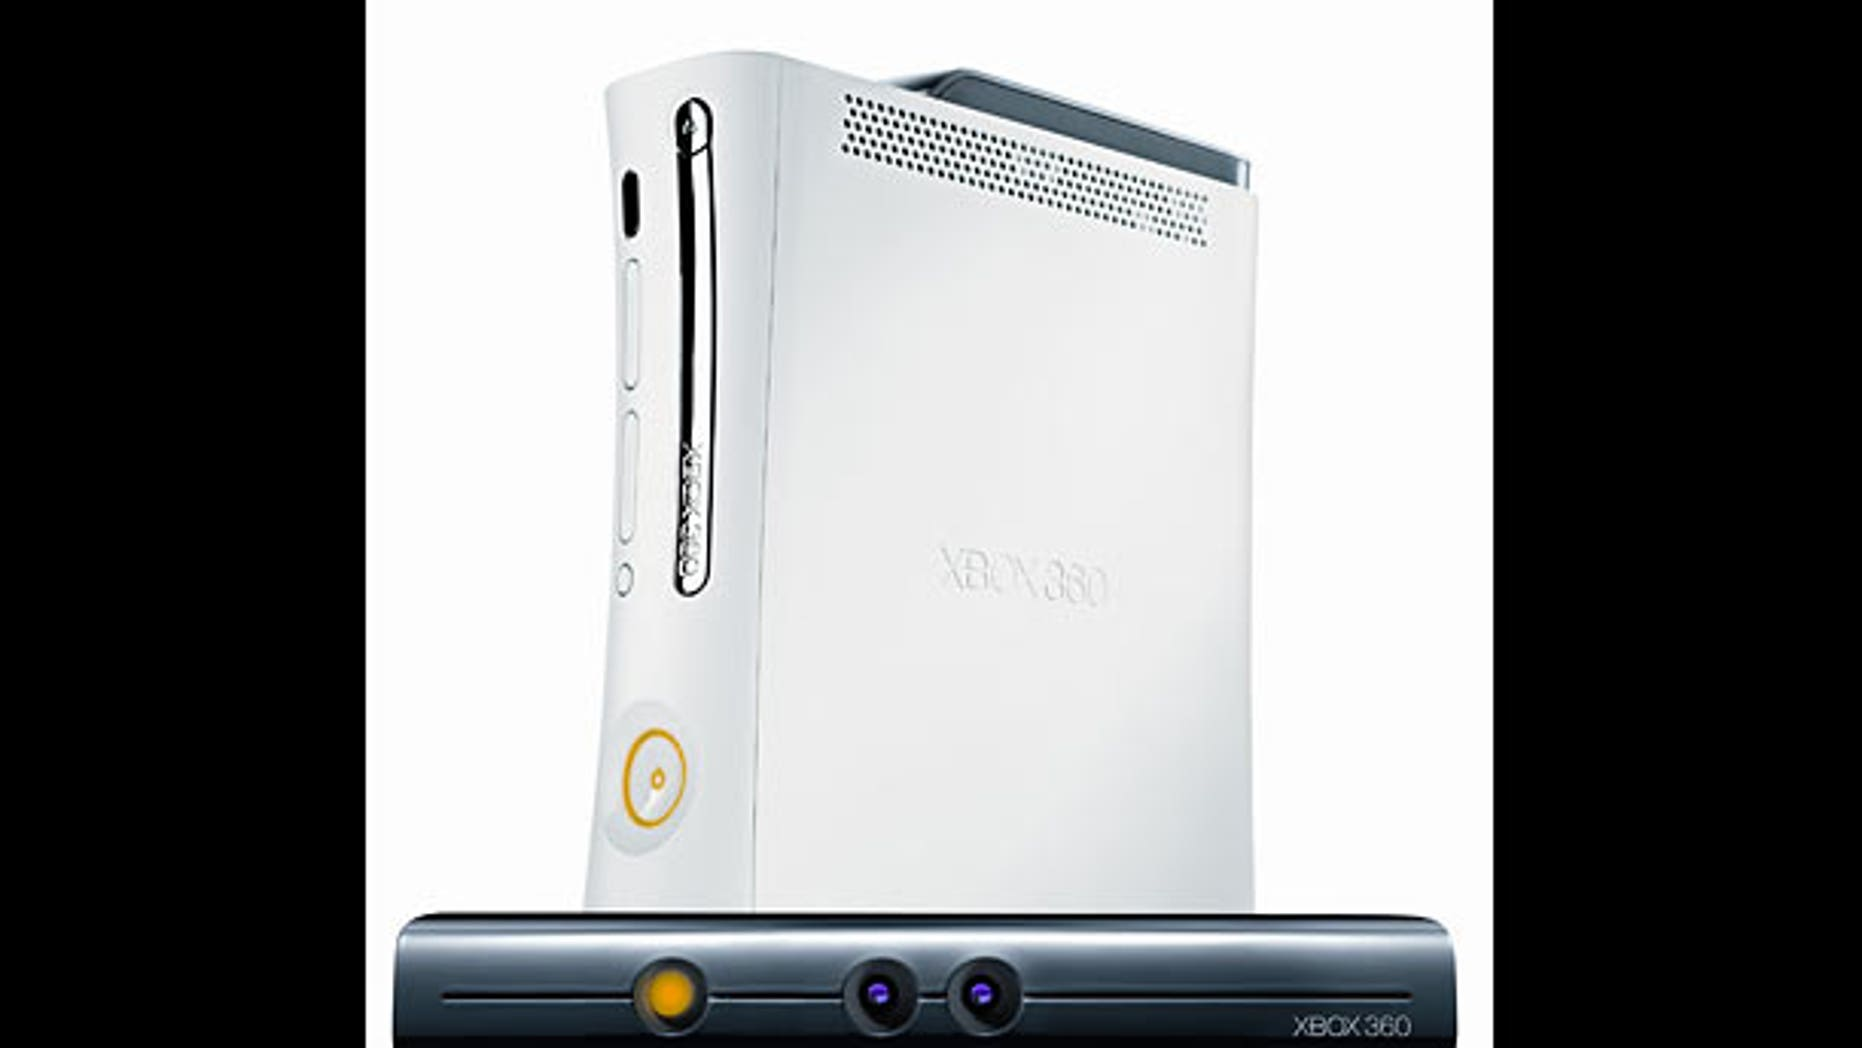 A module that can be added onto the existing Xbox 360, Project Natal incorporates sensors that track a player's full body movements while responding to spoken commands, directions and even shifts in emotional tone.